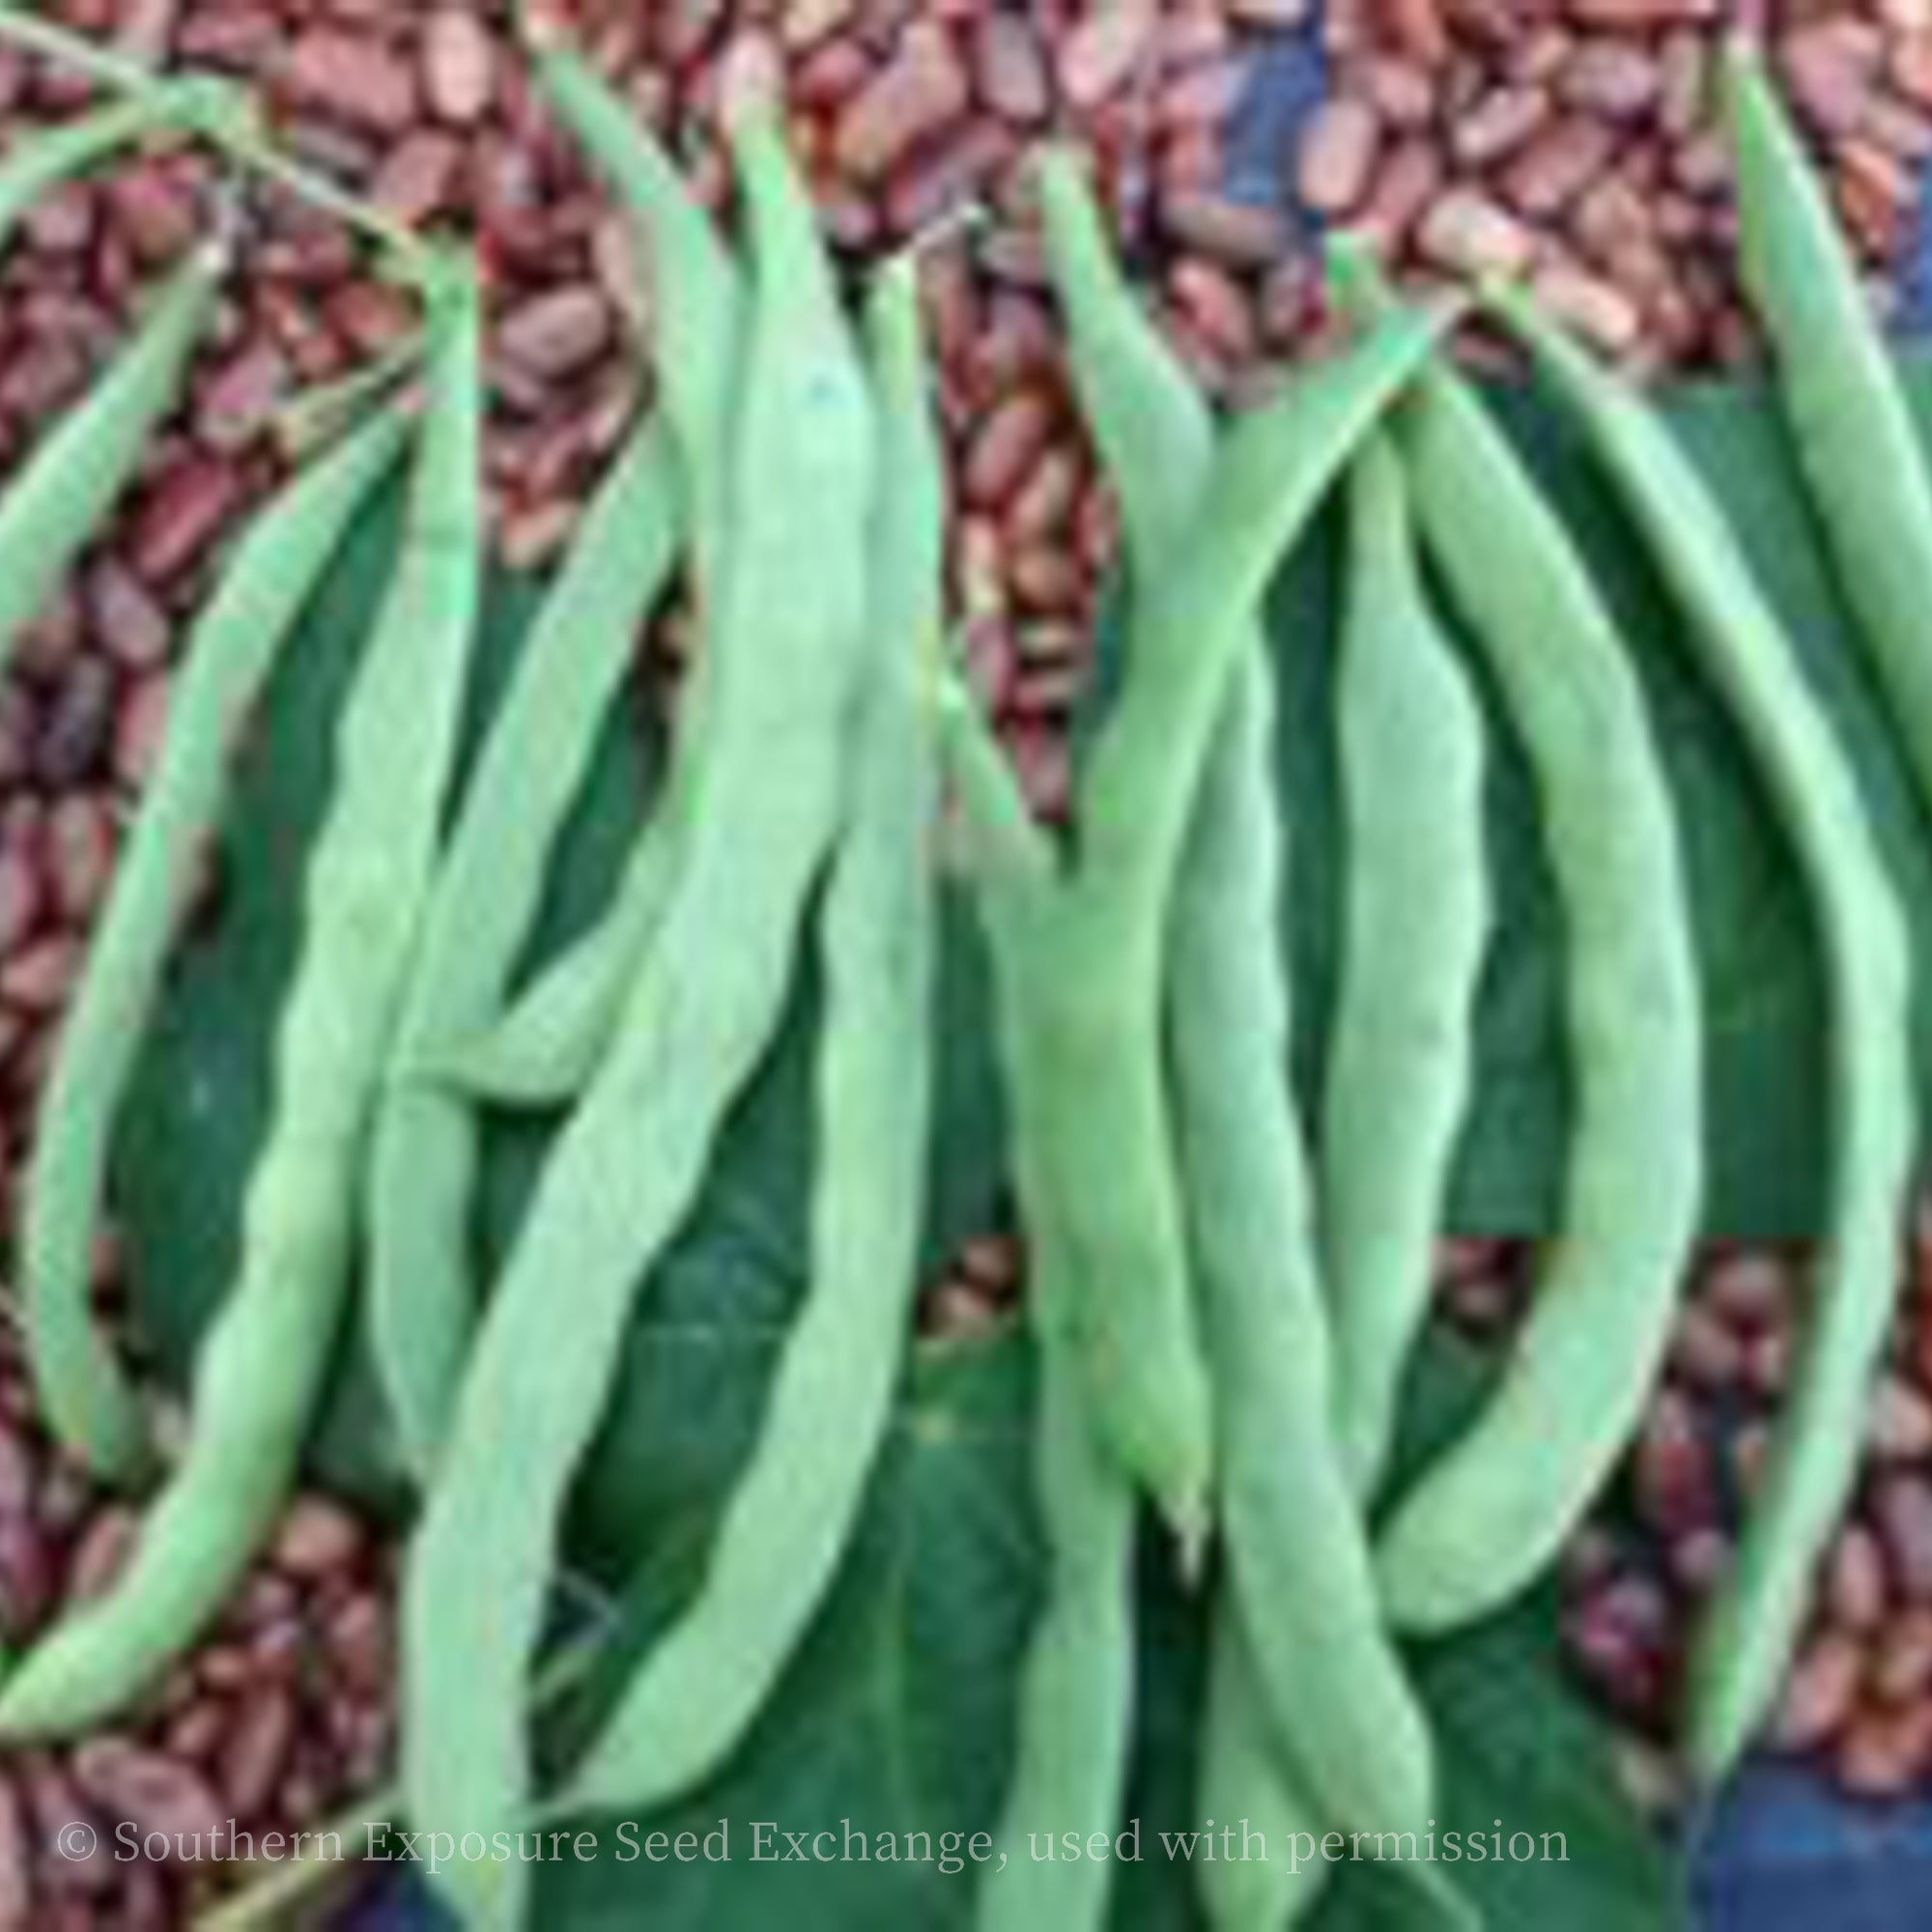 Kentucky Wonder (Old Homestead) Pole Snap Bean